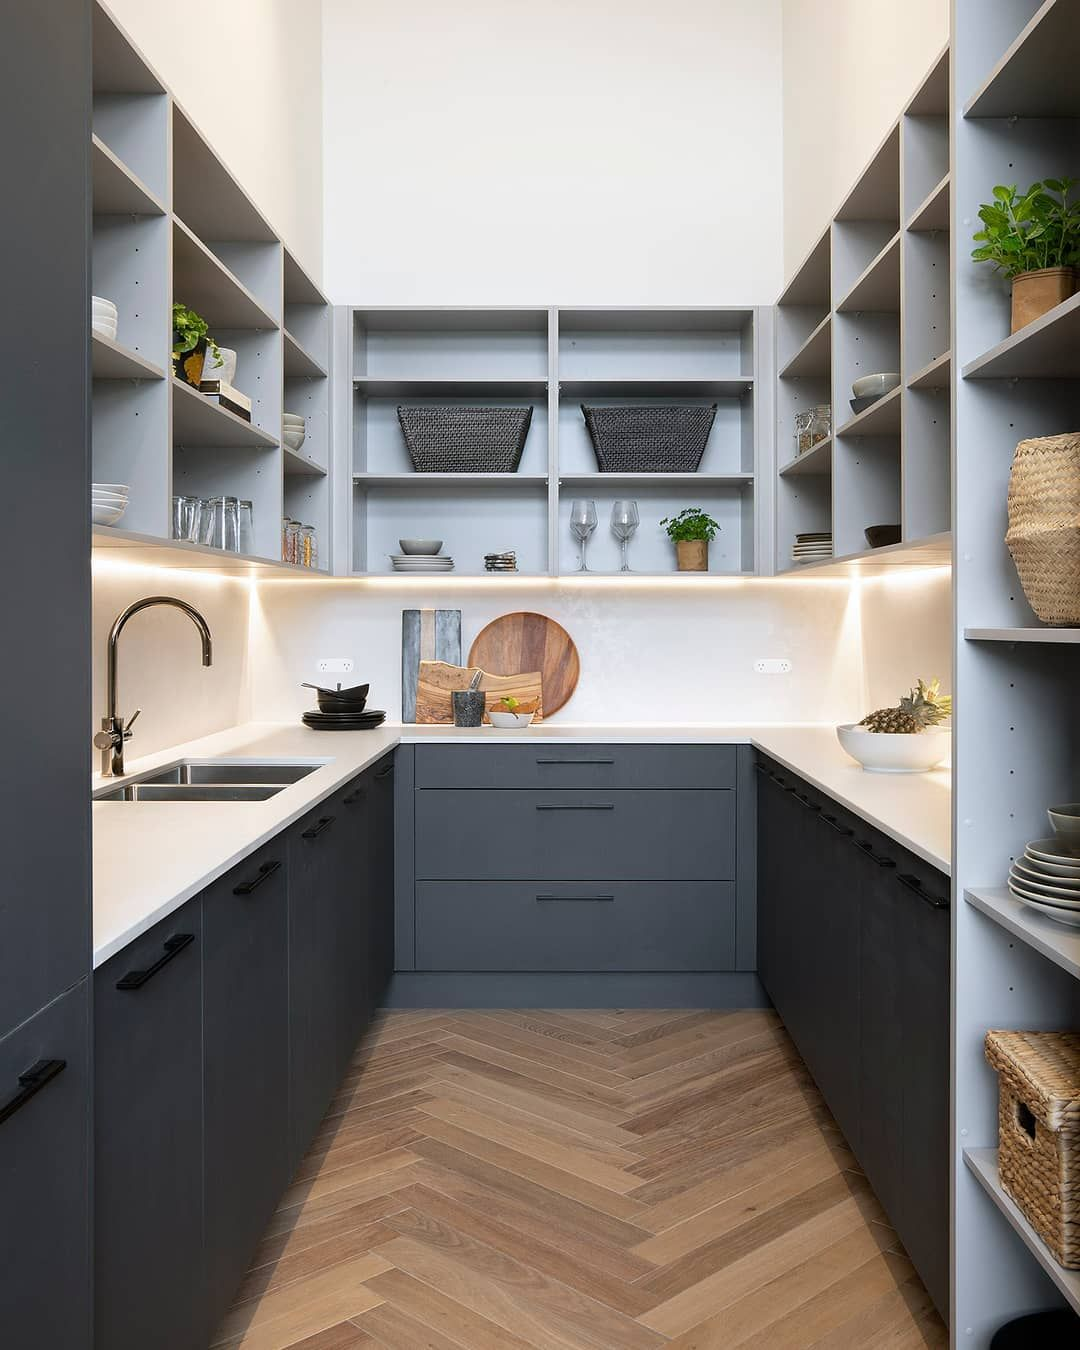 Freedom Kitchens On Instagram If You Re Lucky Enough To Have The Space For One A Bu Kitchen Inspiration Design Interior Design Kitchen Kitchen Pantry Design